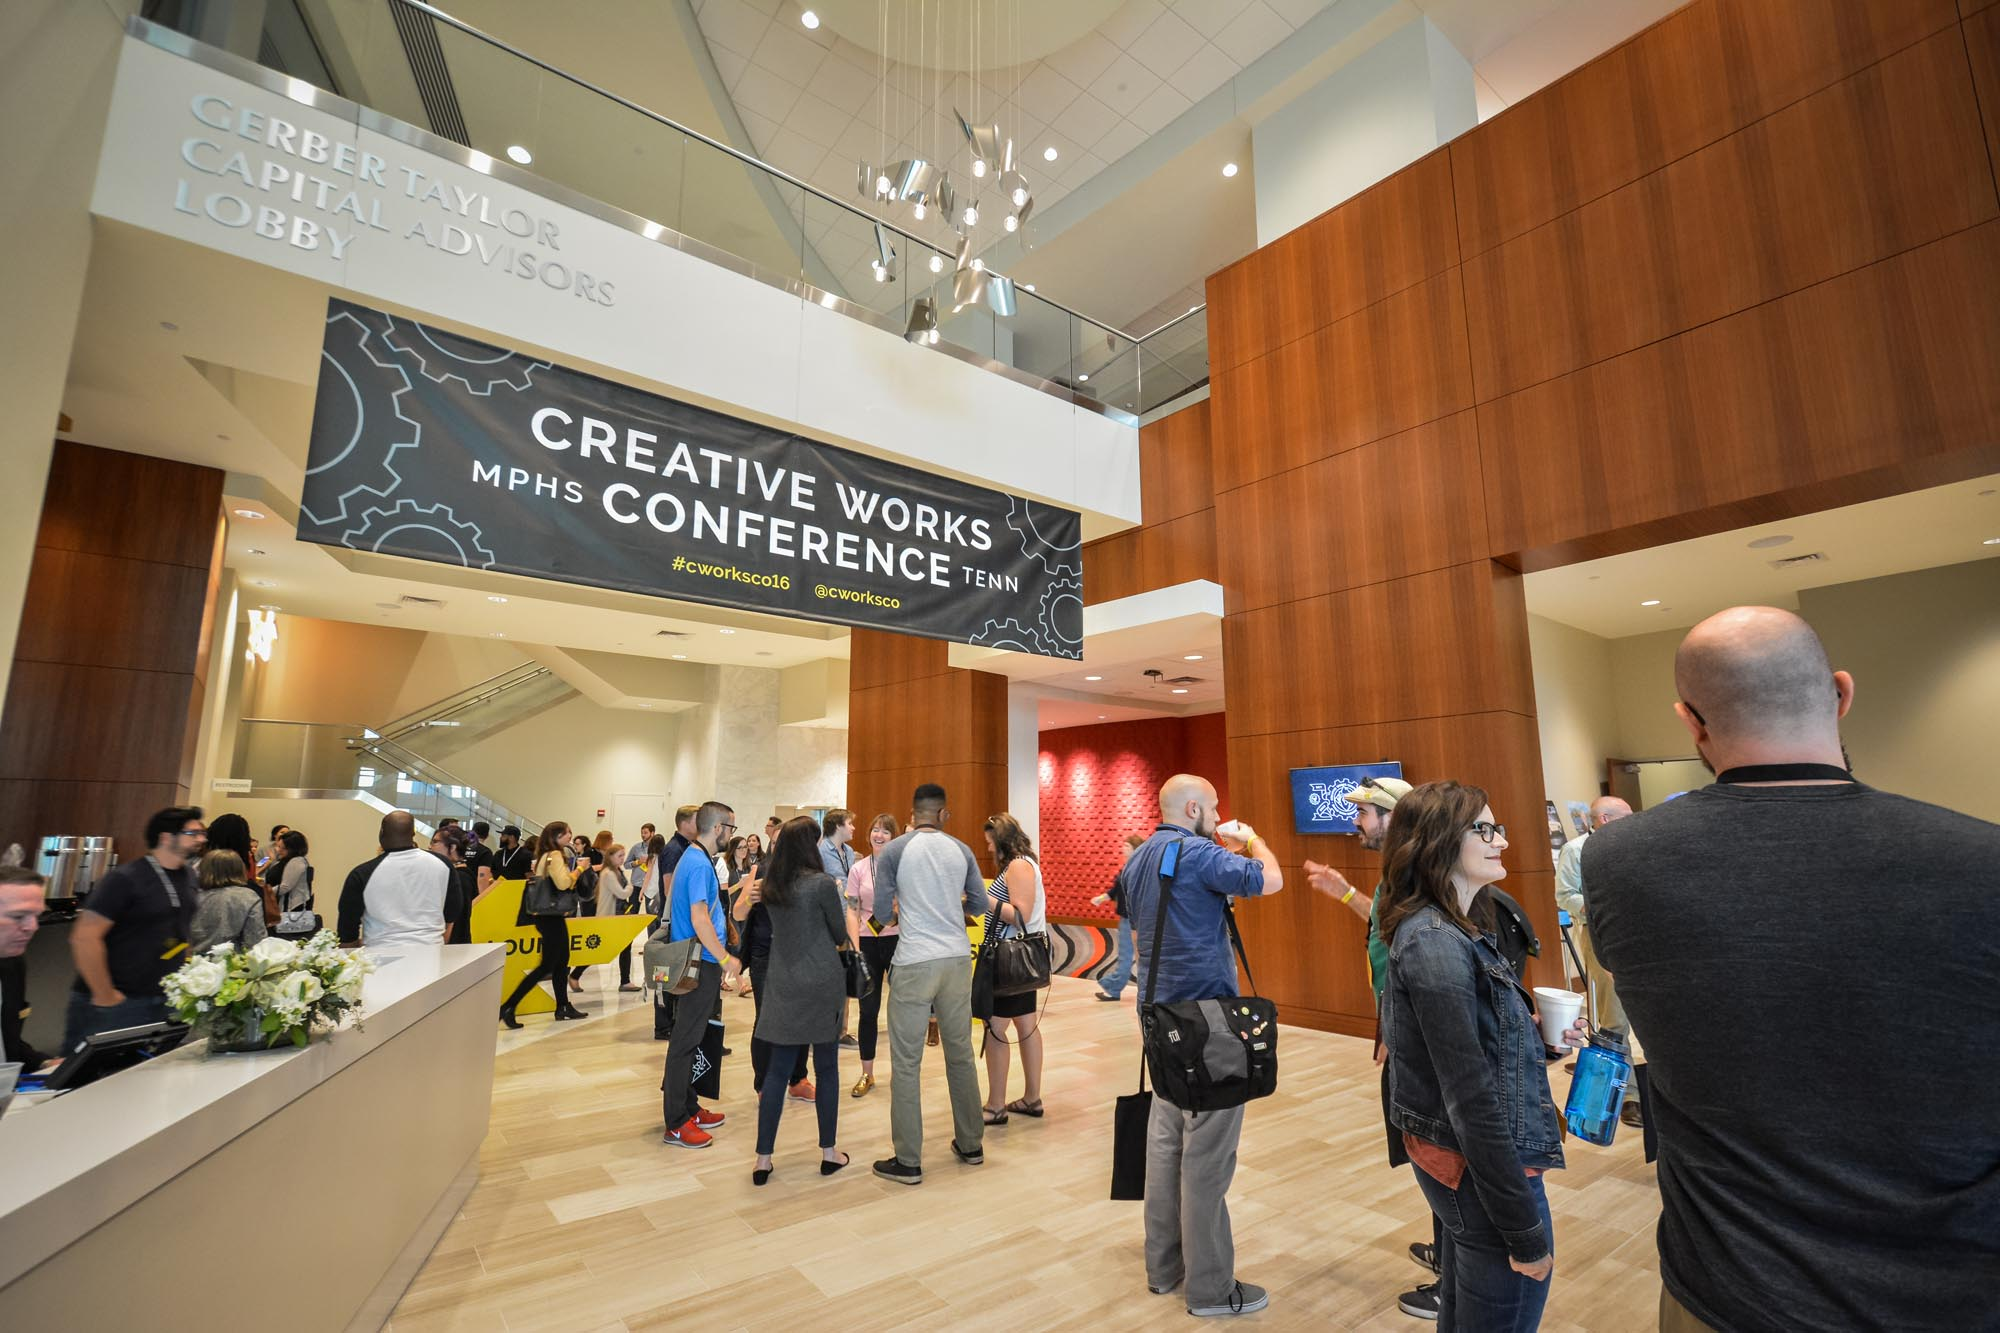 Creative Works Conference 2016 0038.jpg